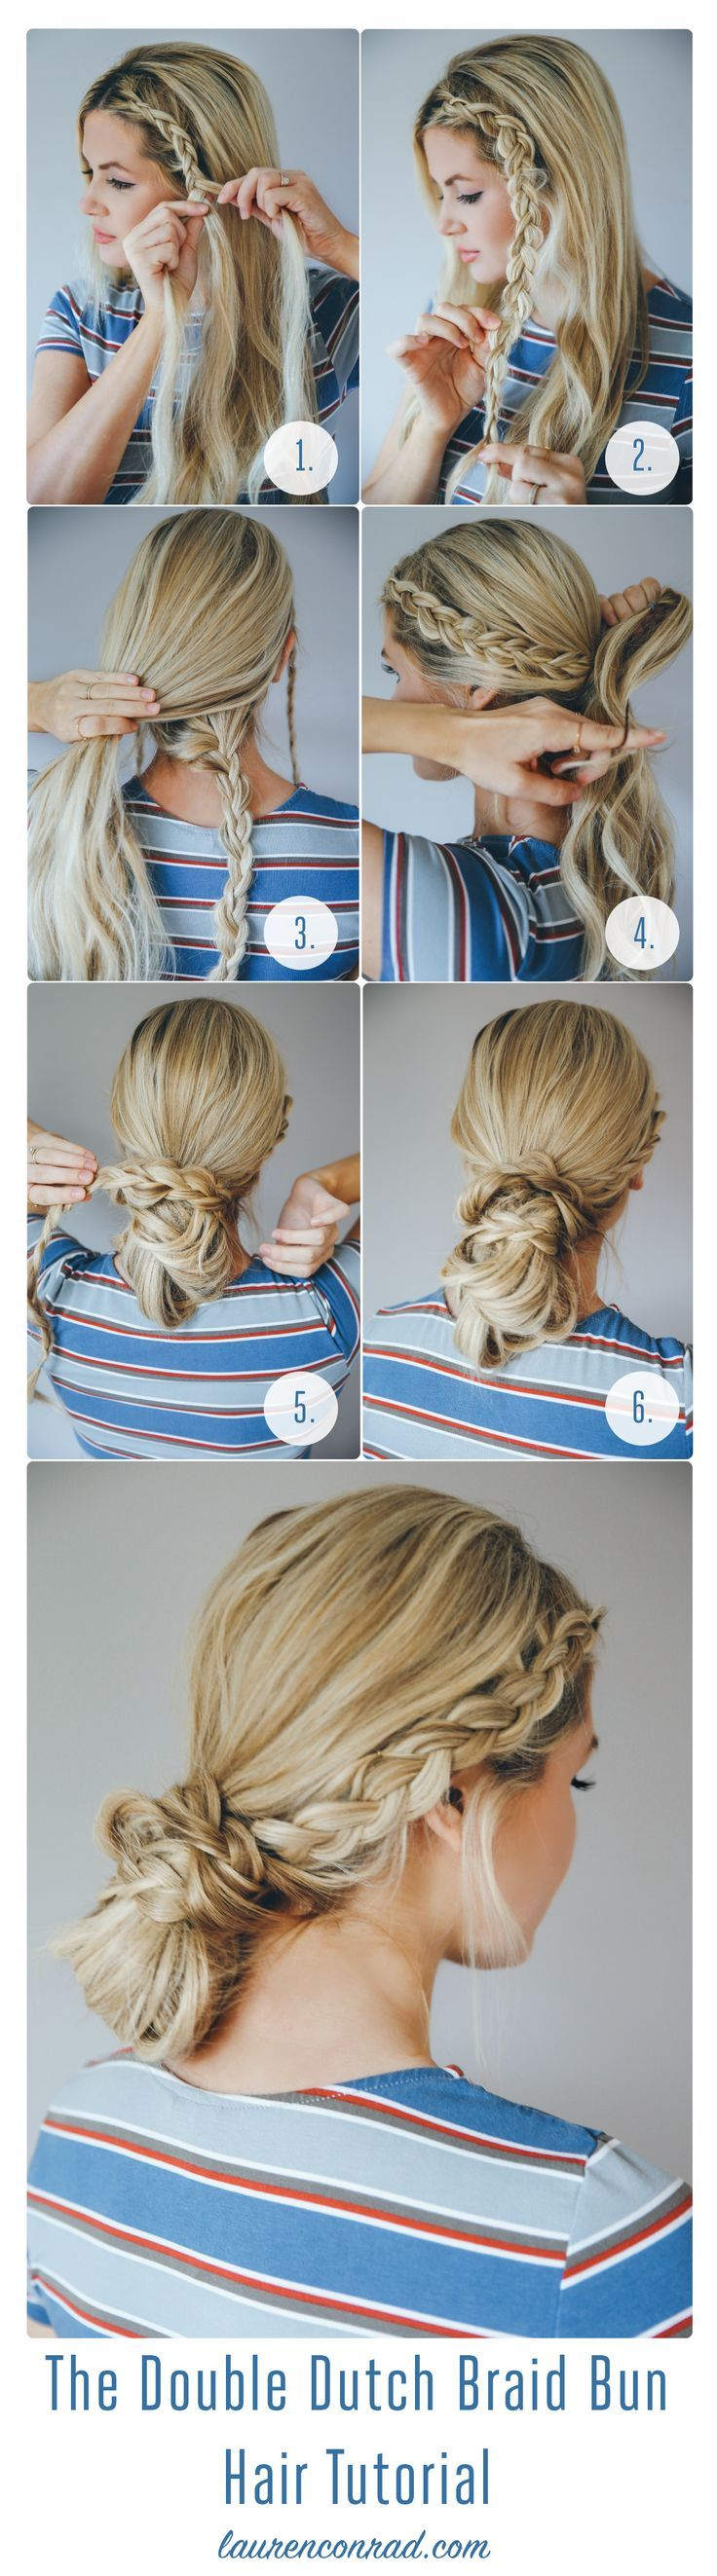 Double Dutch Braid Pictures Photos And Images For